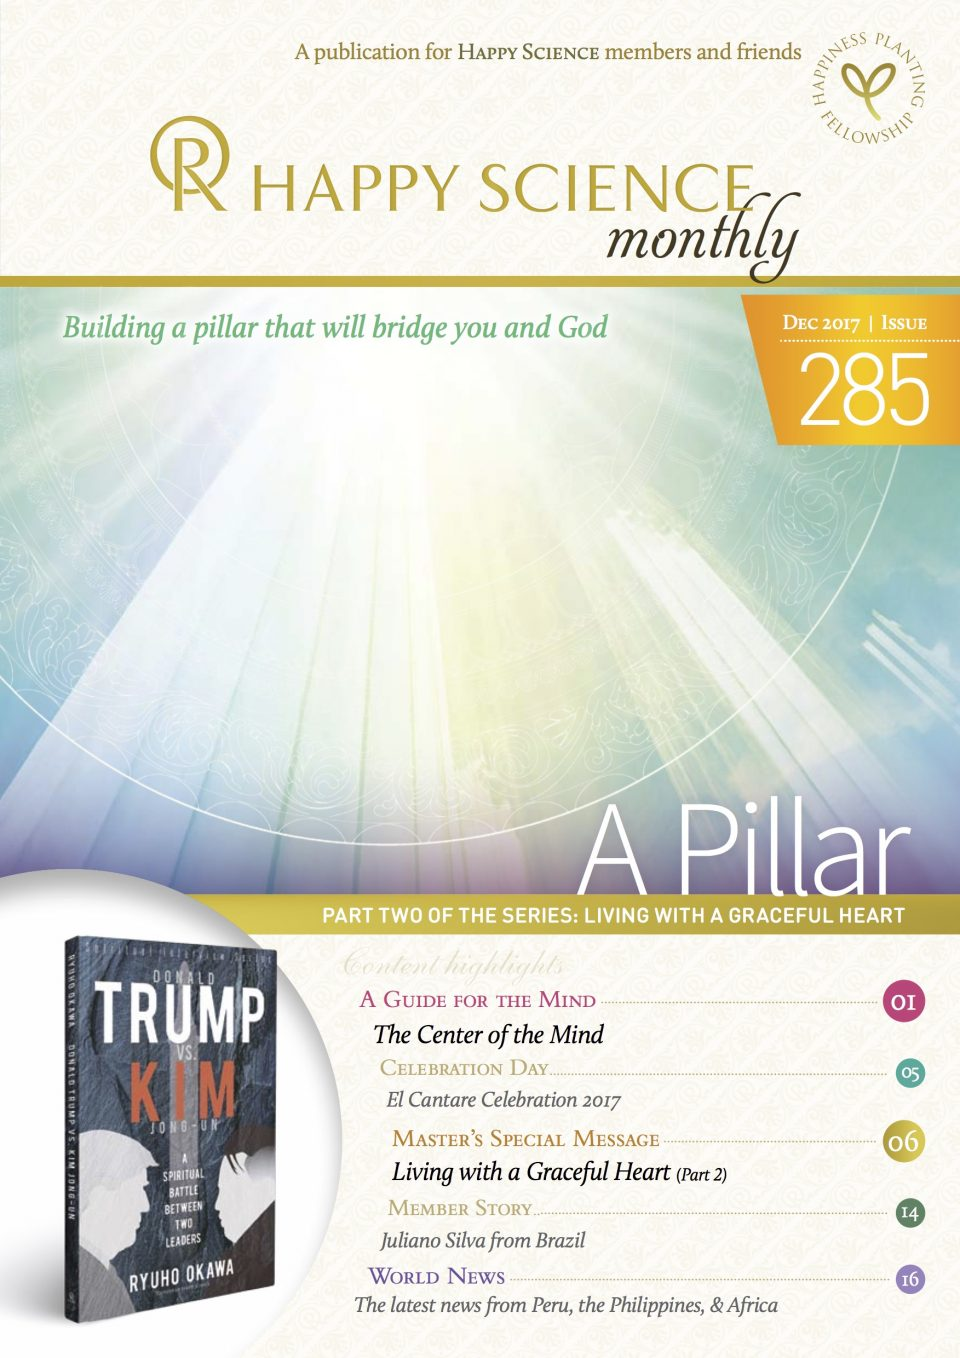 HAPPY SCIENCE Monthly 285 is released!